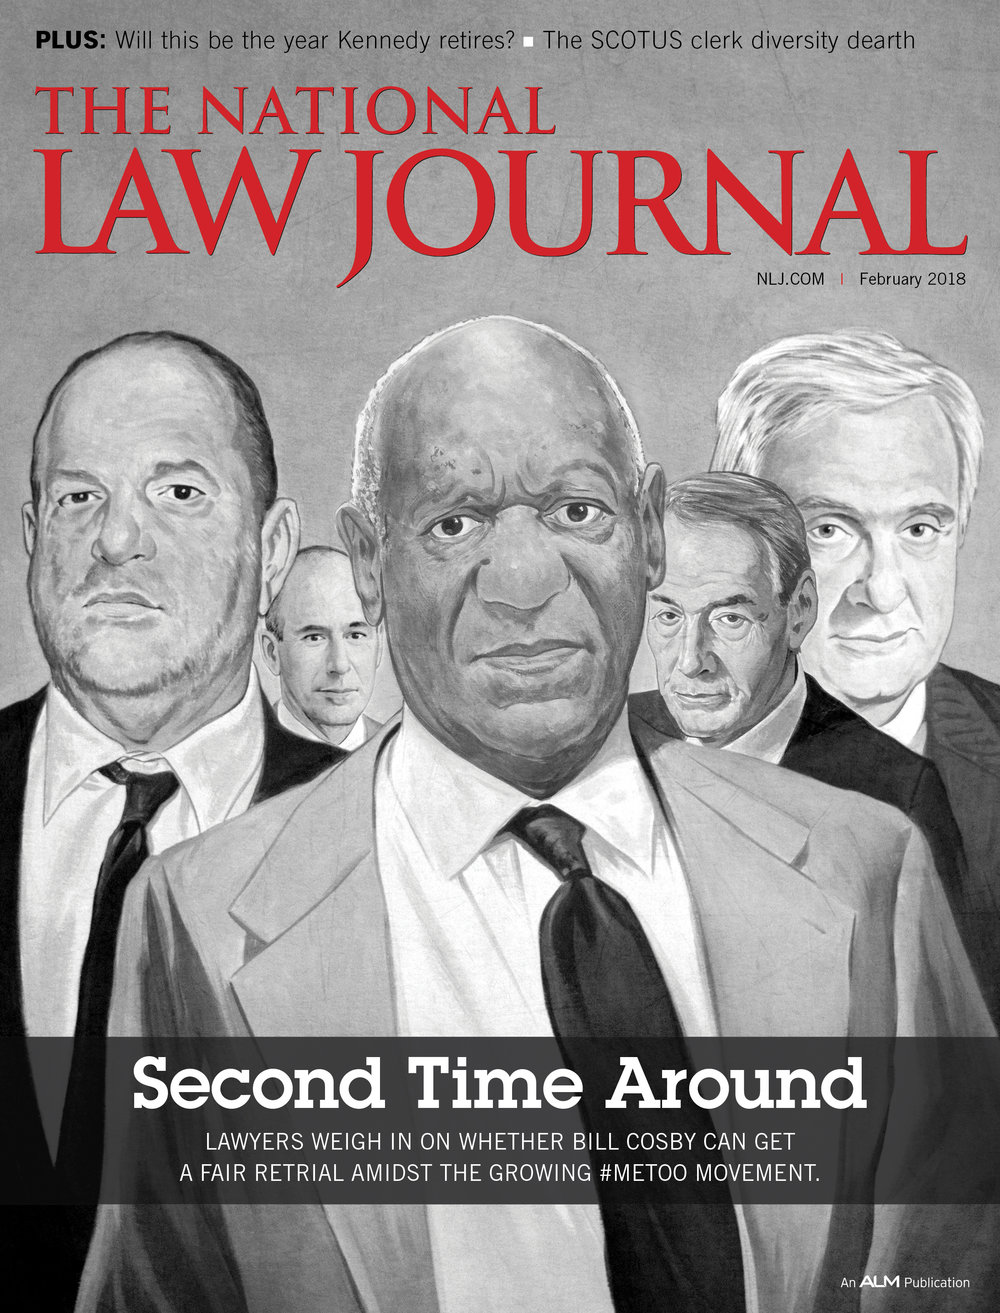 Second Time Around #timesup   |  The National Law Journal  cover February 2017